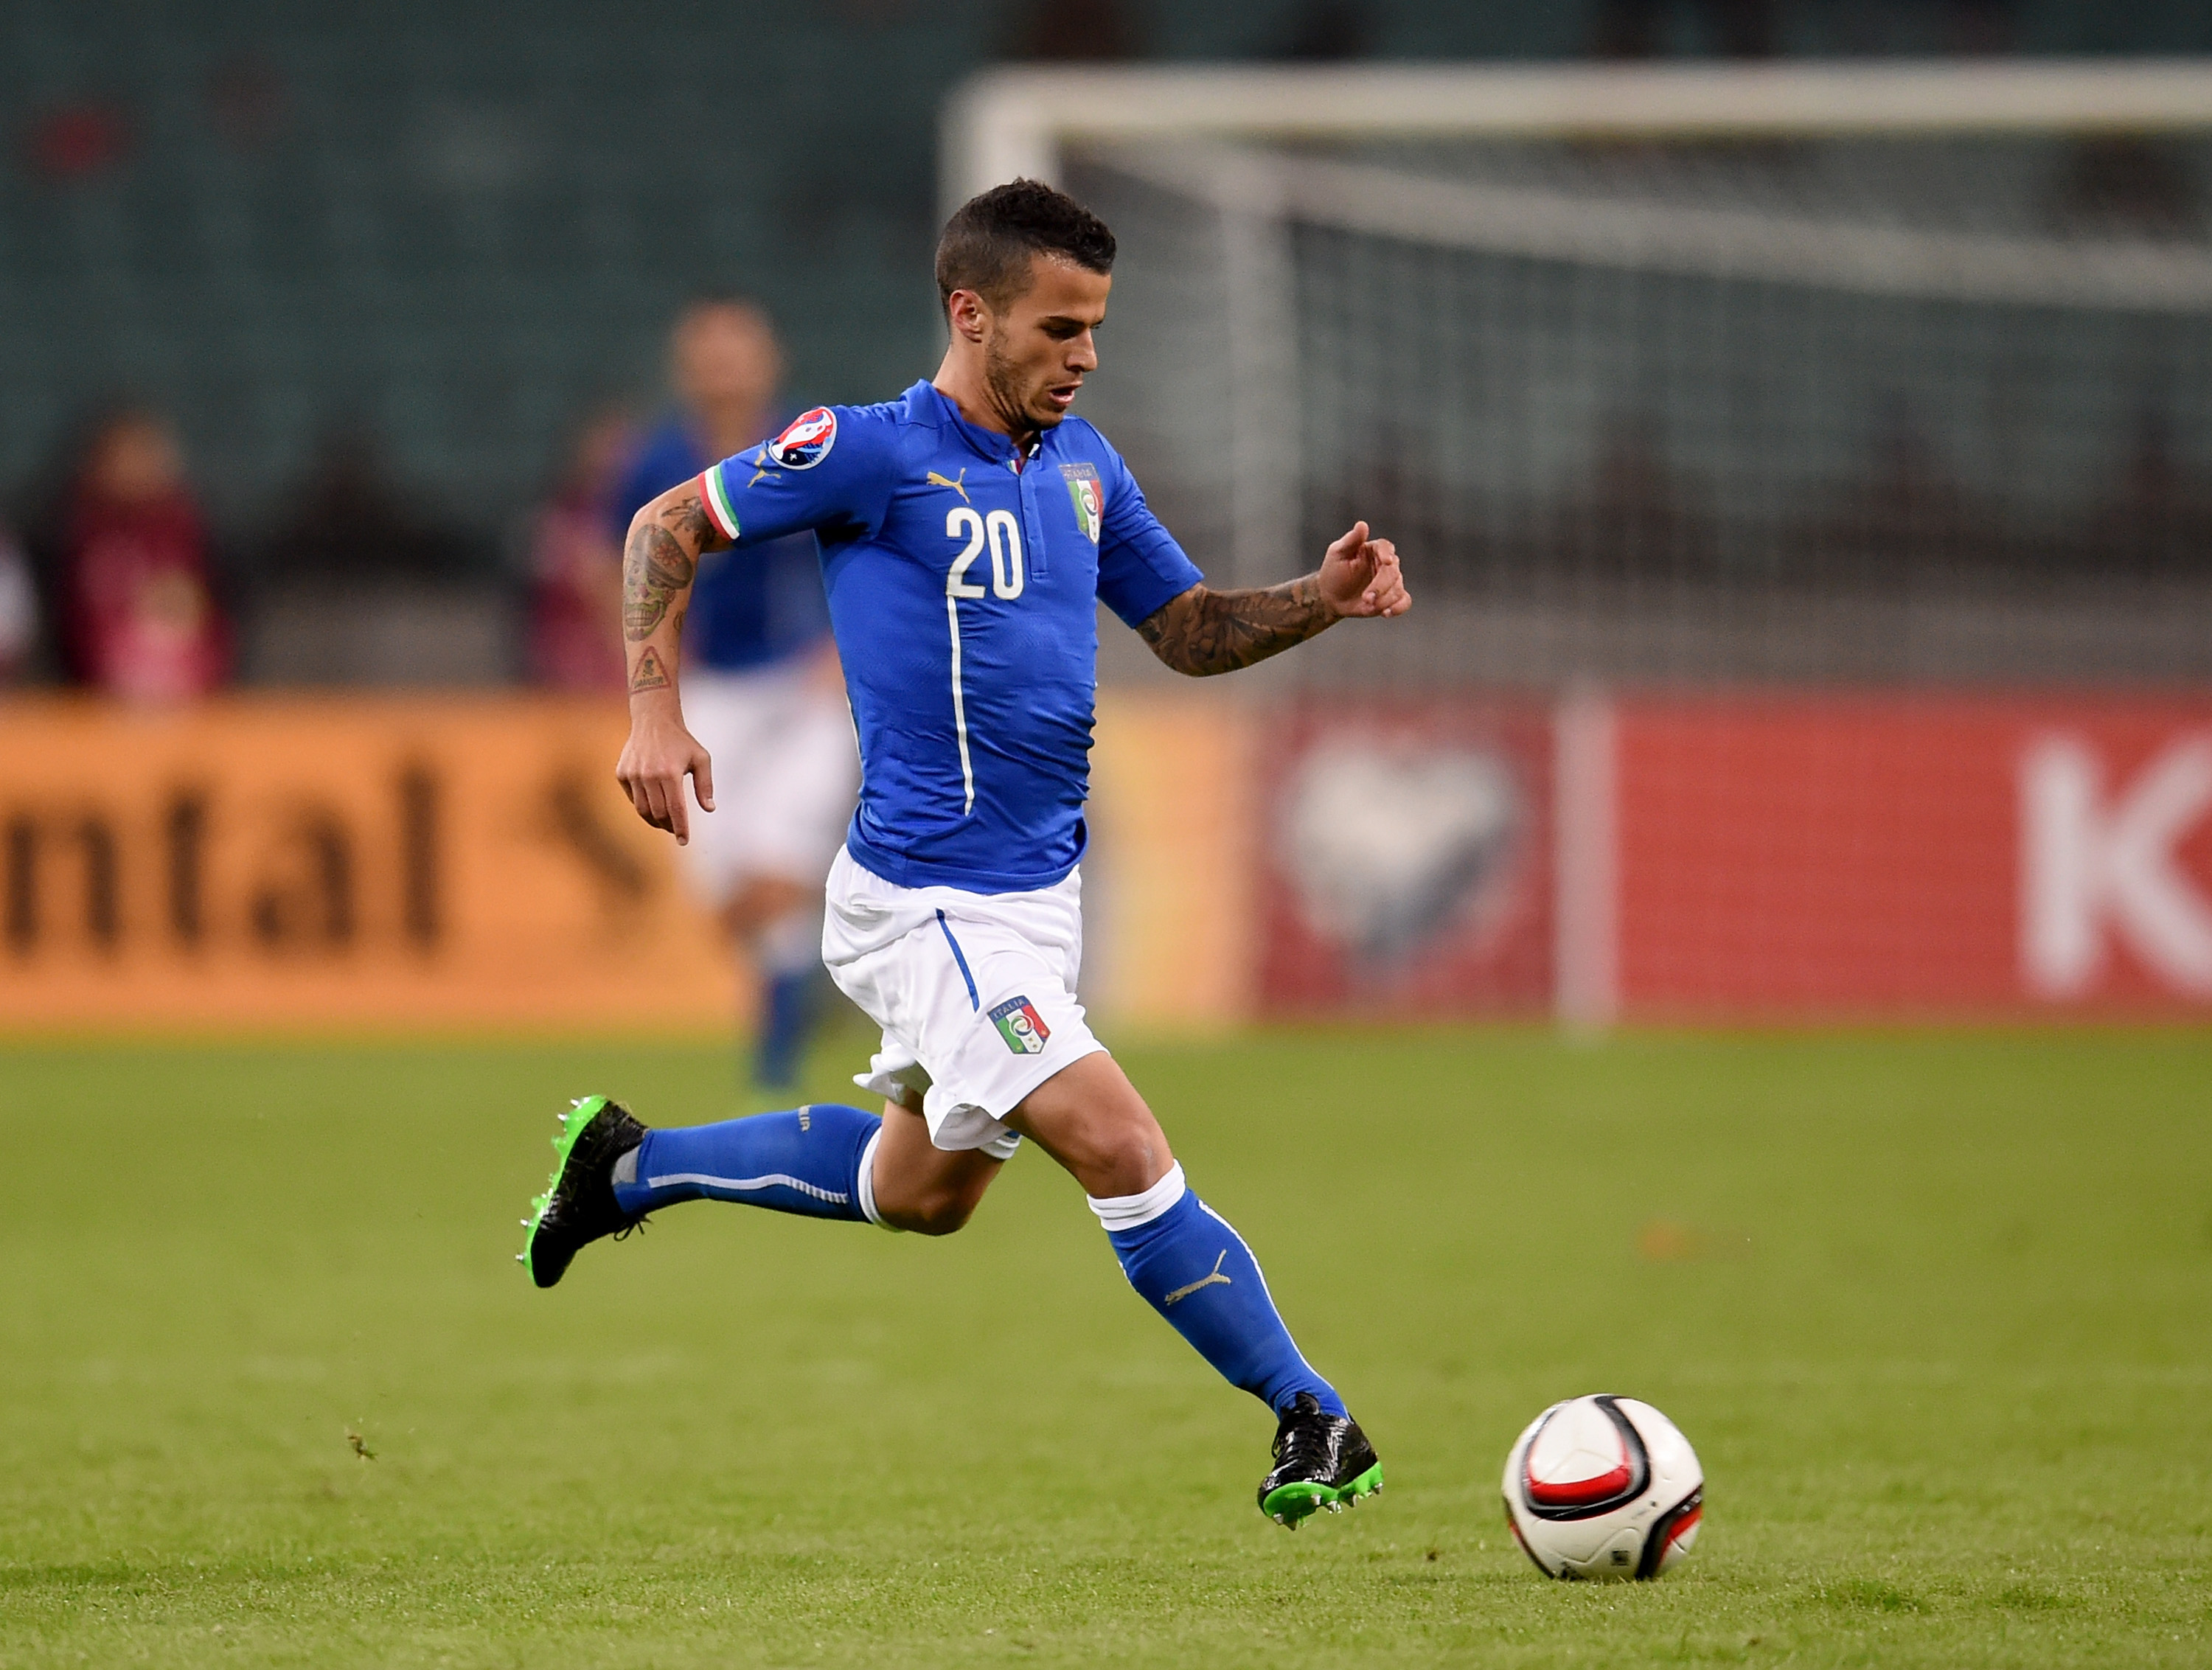 Sebastian Giovinco's potential Italy call monumental for MLS